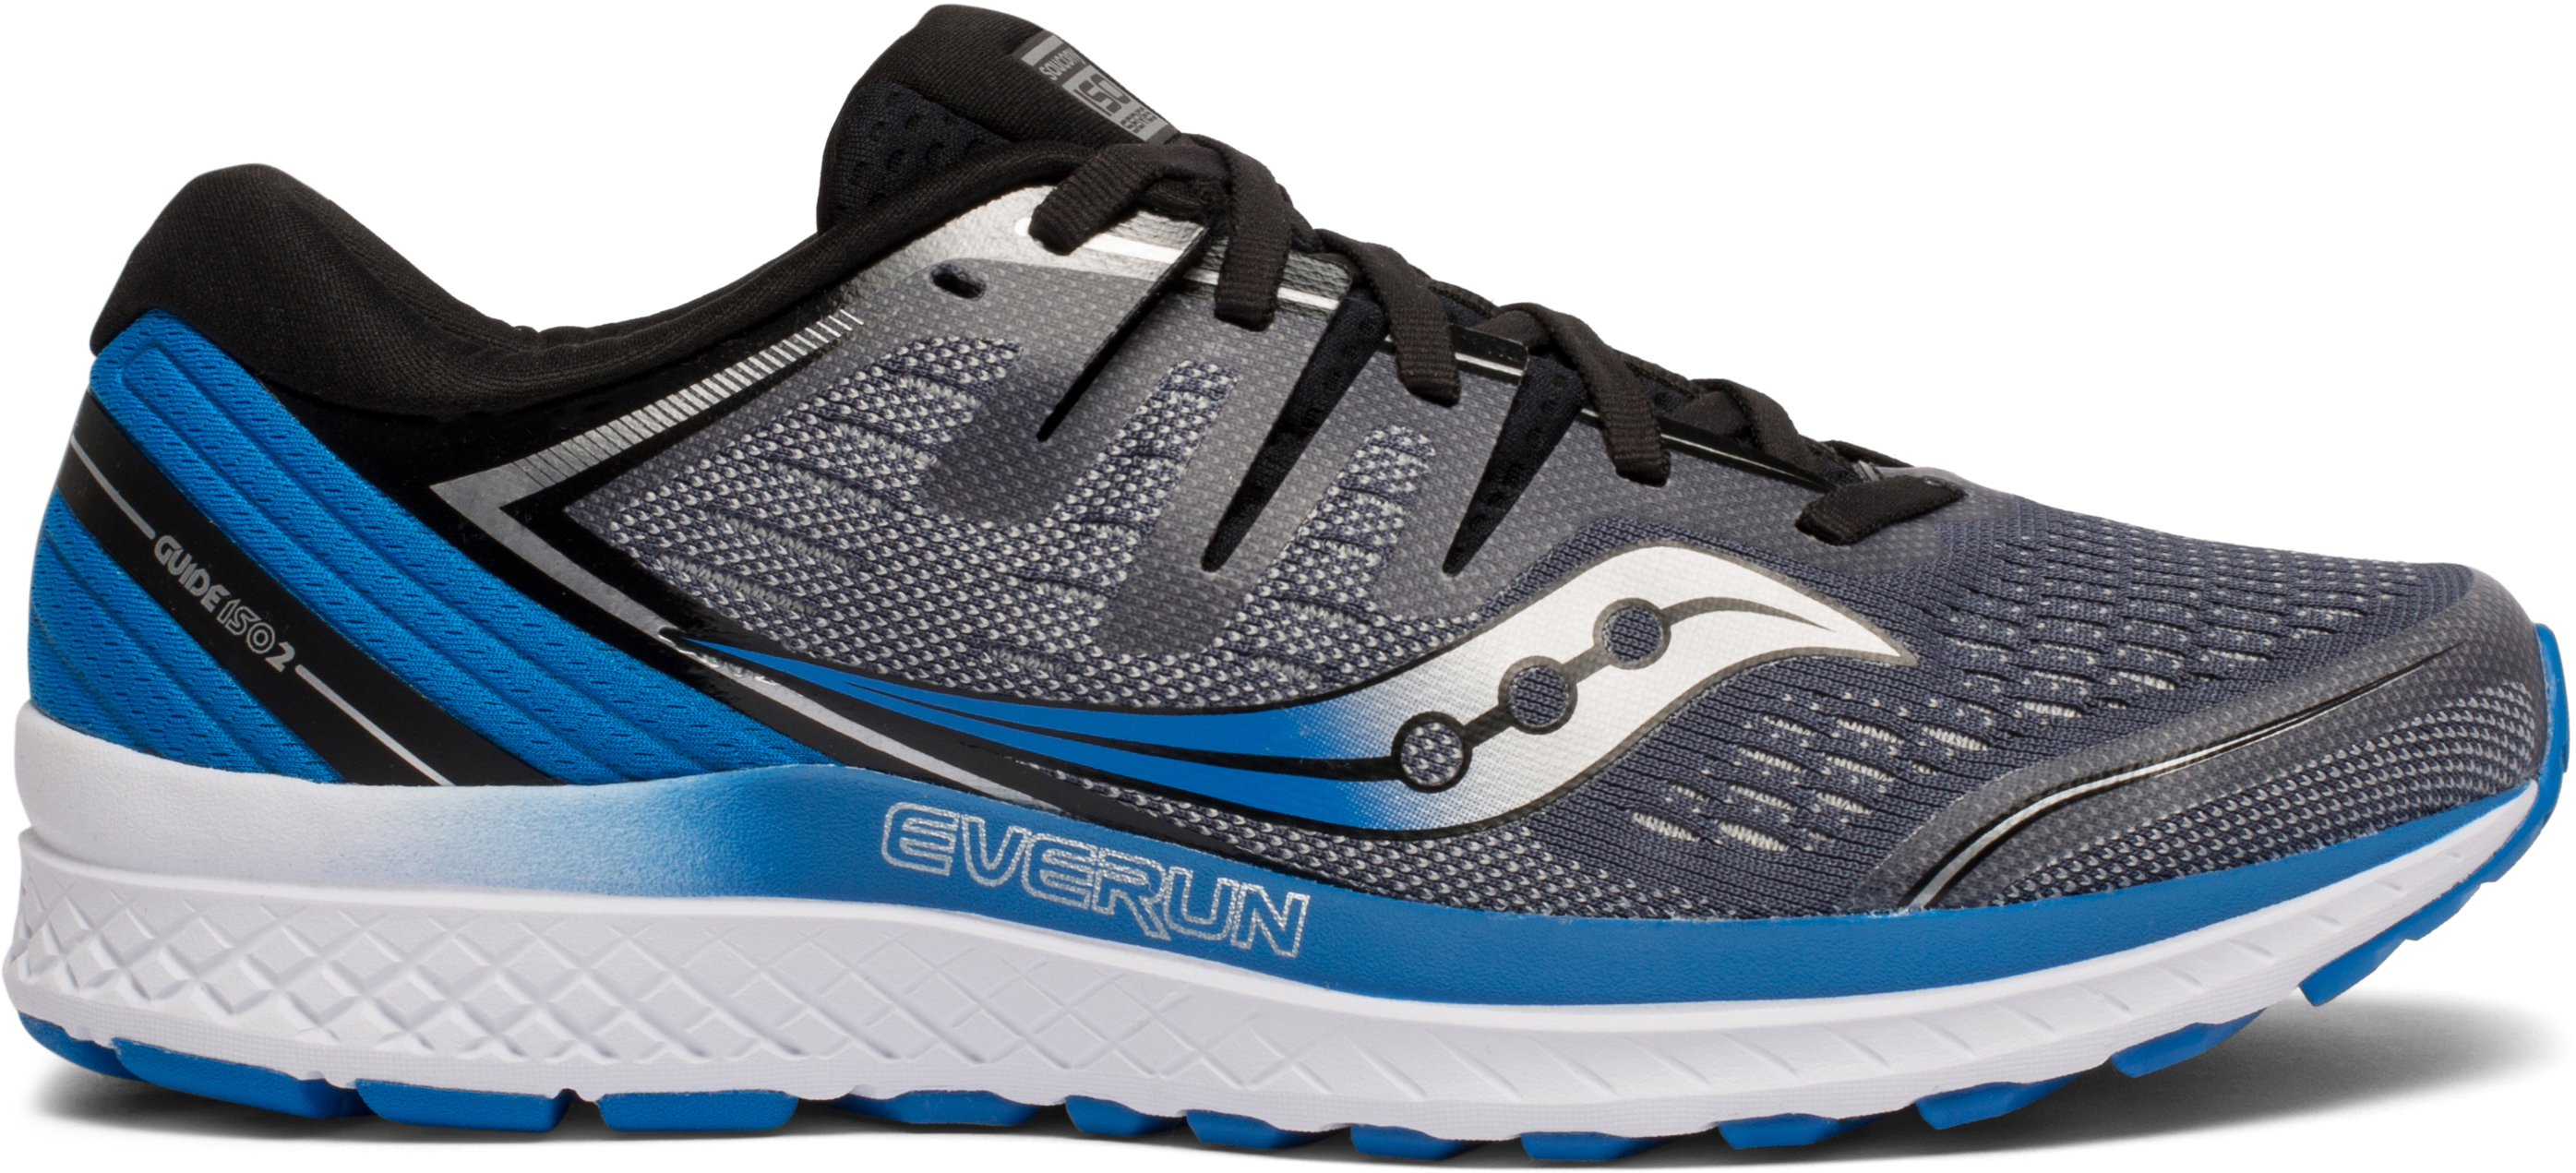 Saucony Guide ISO 2 Womens Running Shoes Blue Cushioned Stability Run Trainers